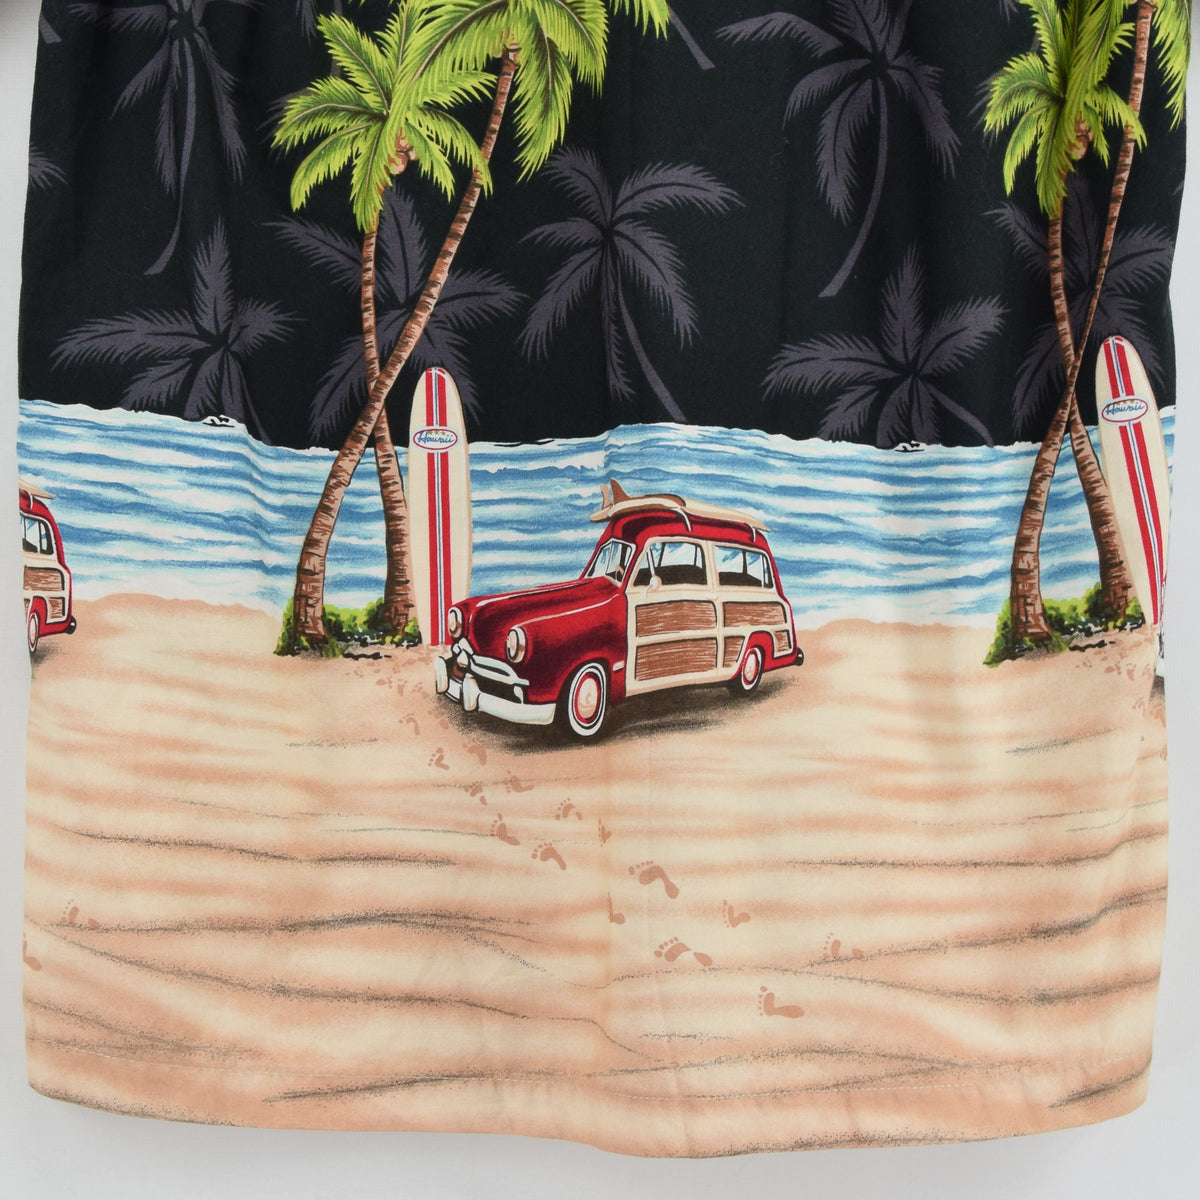 Vintage Hawaiian Beach Aloha Holiday Shirt Made in USA Short Sleeve S back hem